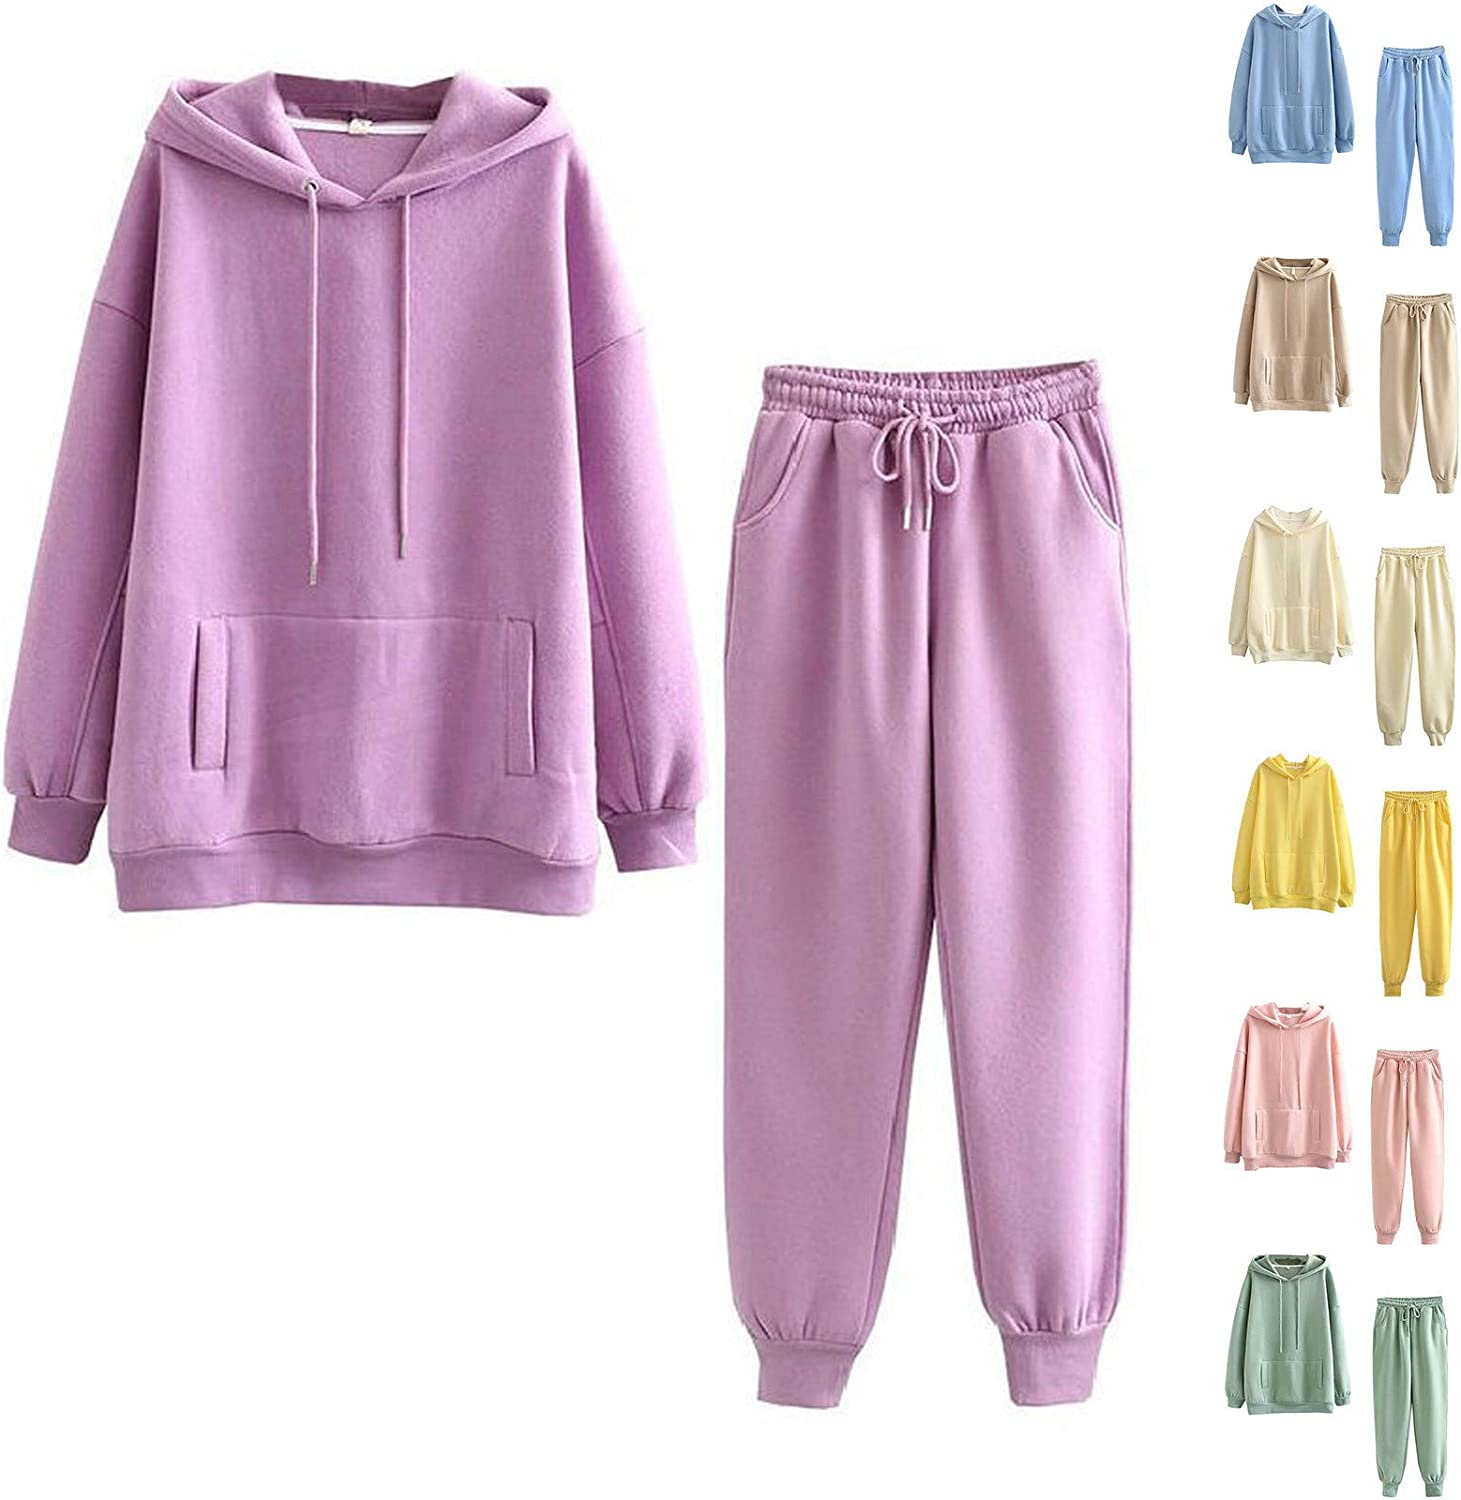 Women's Casual Sweatsuit San Antonio Mall Two Piece H Outfits Color Pockets Max 62% OFF Solid